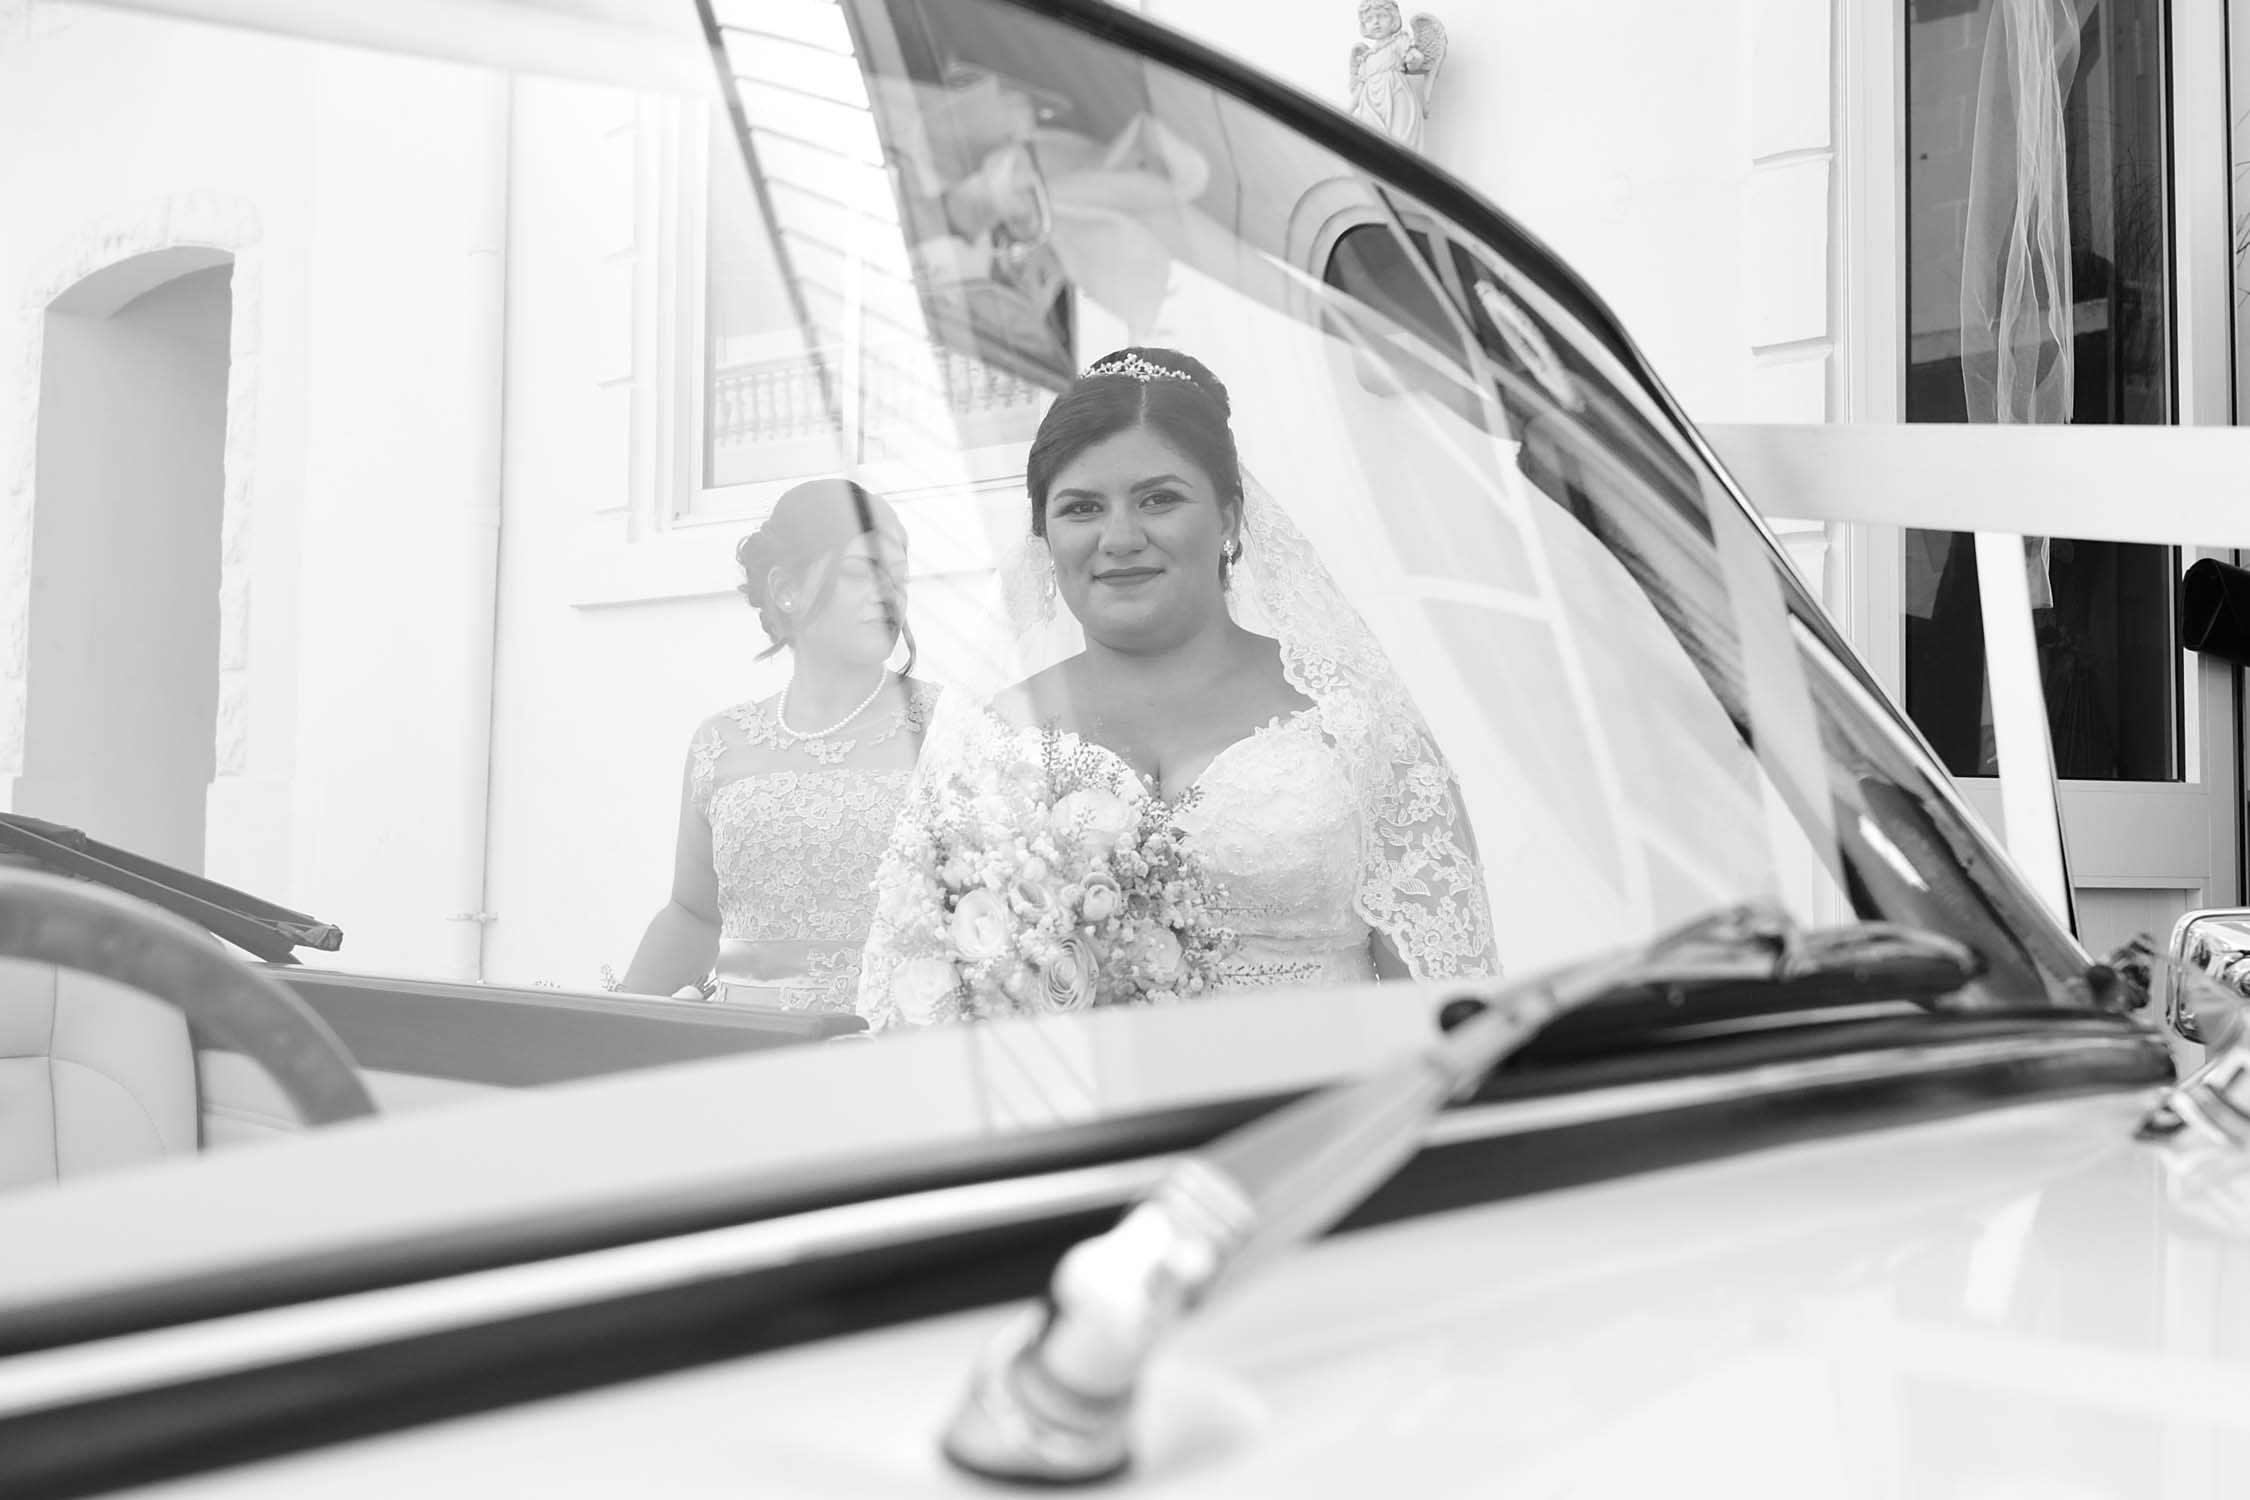 Bride Happily smiling before entering car to go to the wedding in Gozo